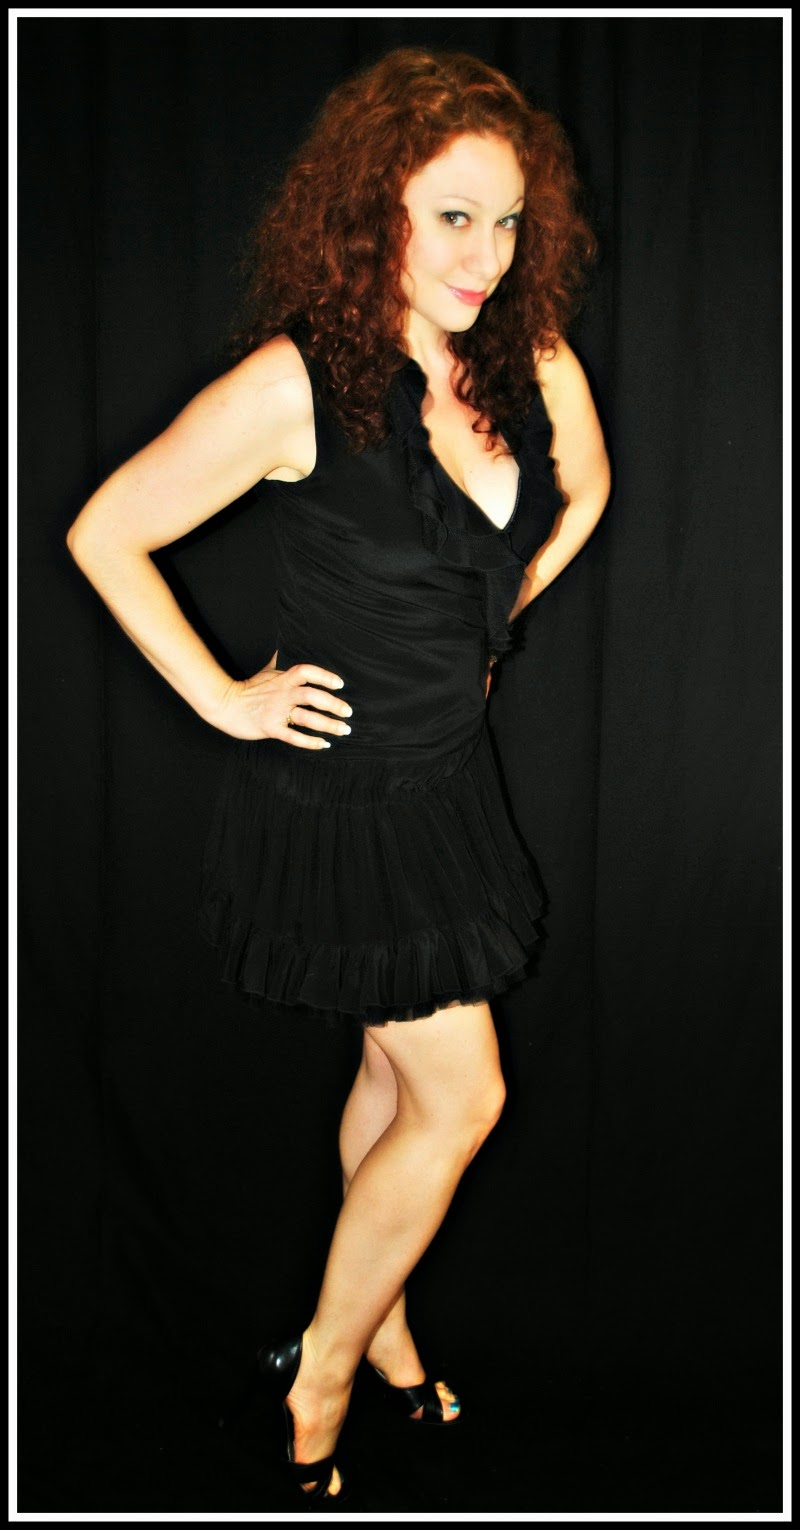 http://www.lendingluxury.com/black-silk-ruffle-dress.html